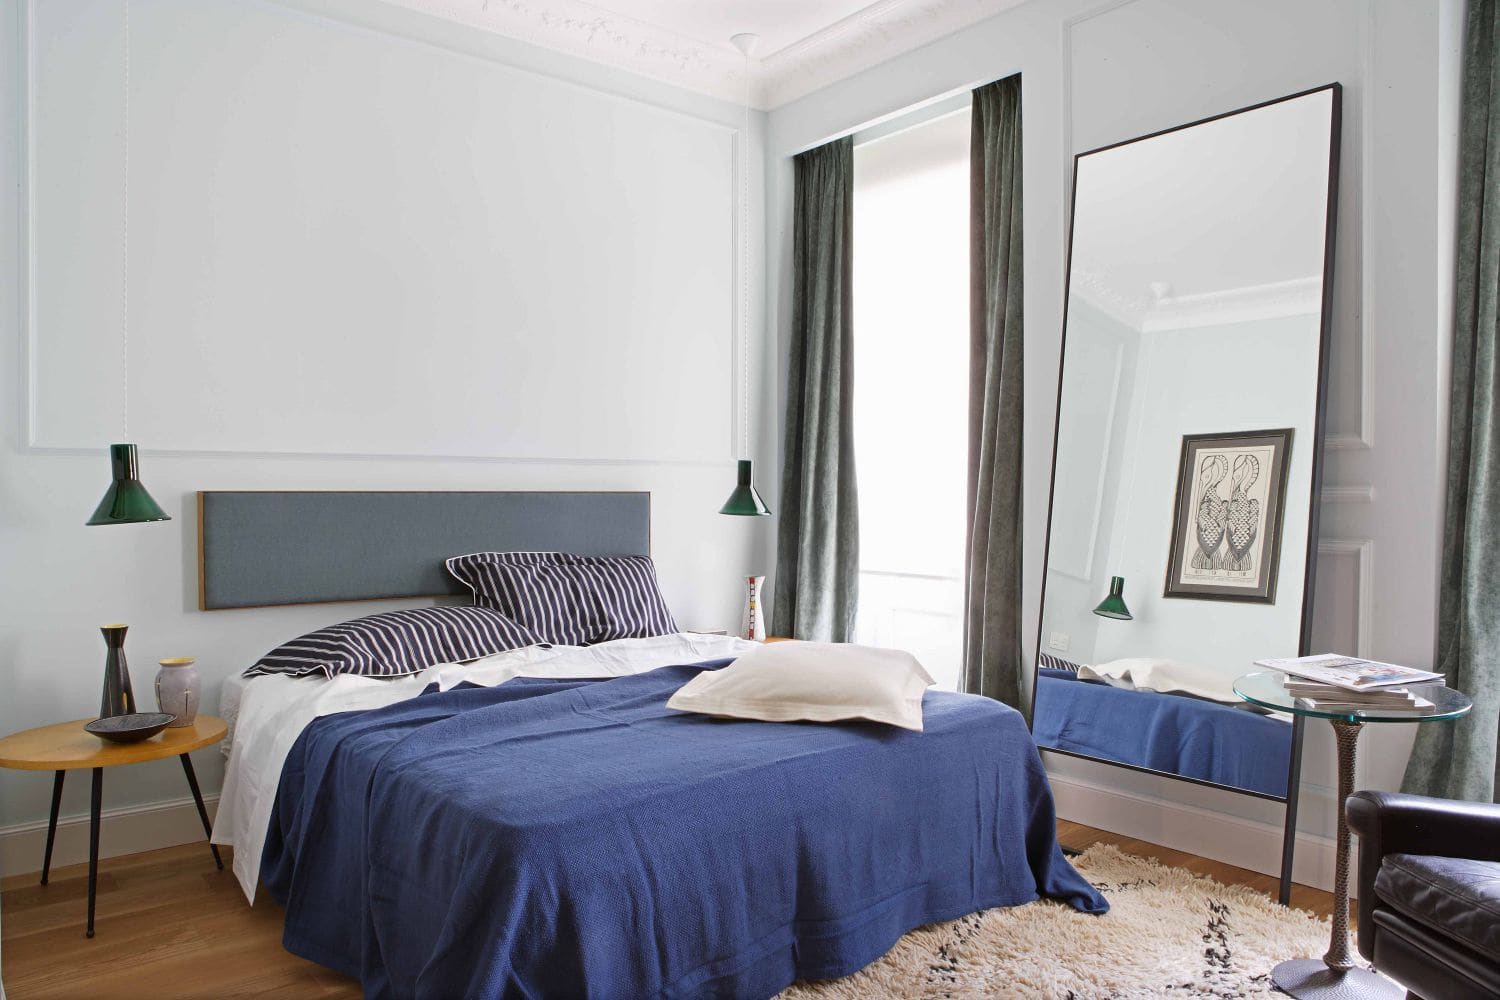 Modern bedroom with blue bedspread and floating headboard via @thouswellblog